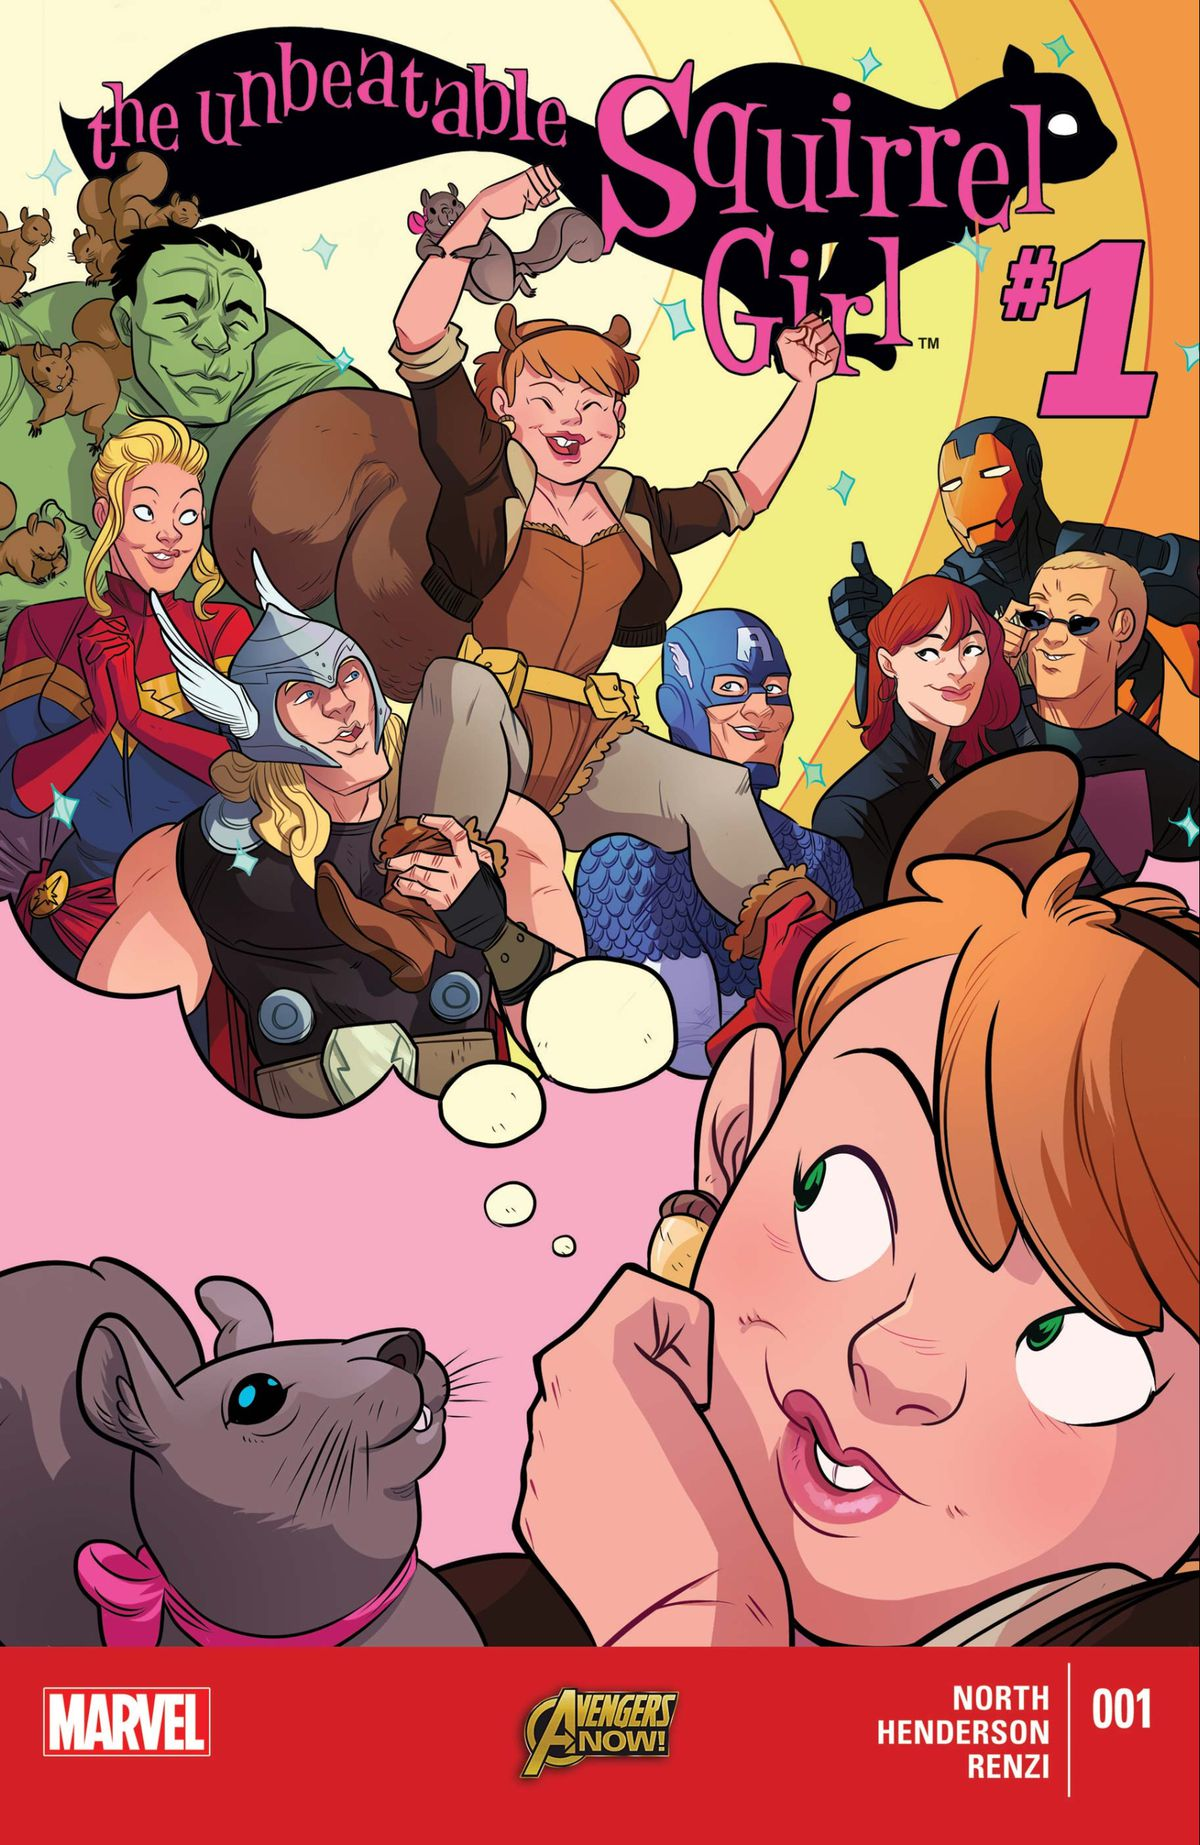 Squirrel Girl dreams of being held aloft on the shoulders of the Avengers, on the cover of The Unbeatable Squirrel Girl #1, Marvel Comics (2015).